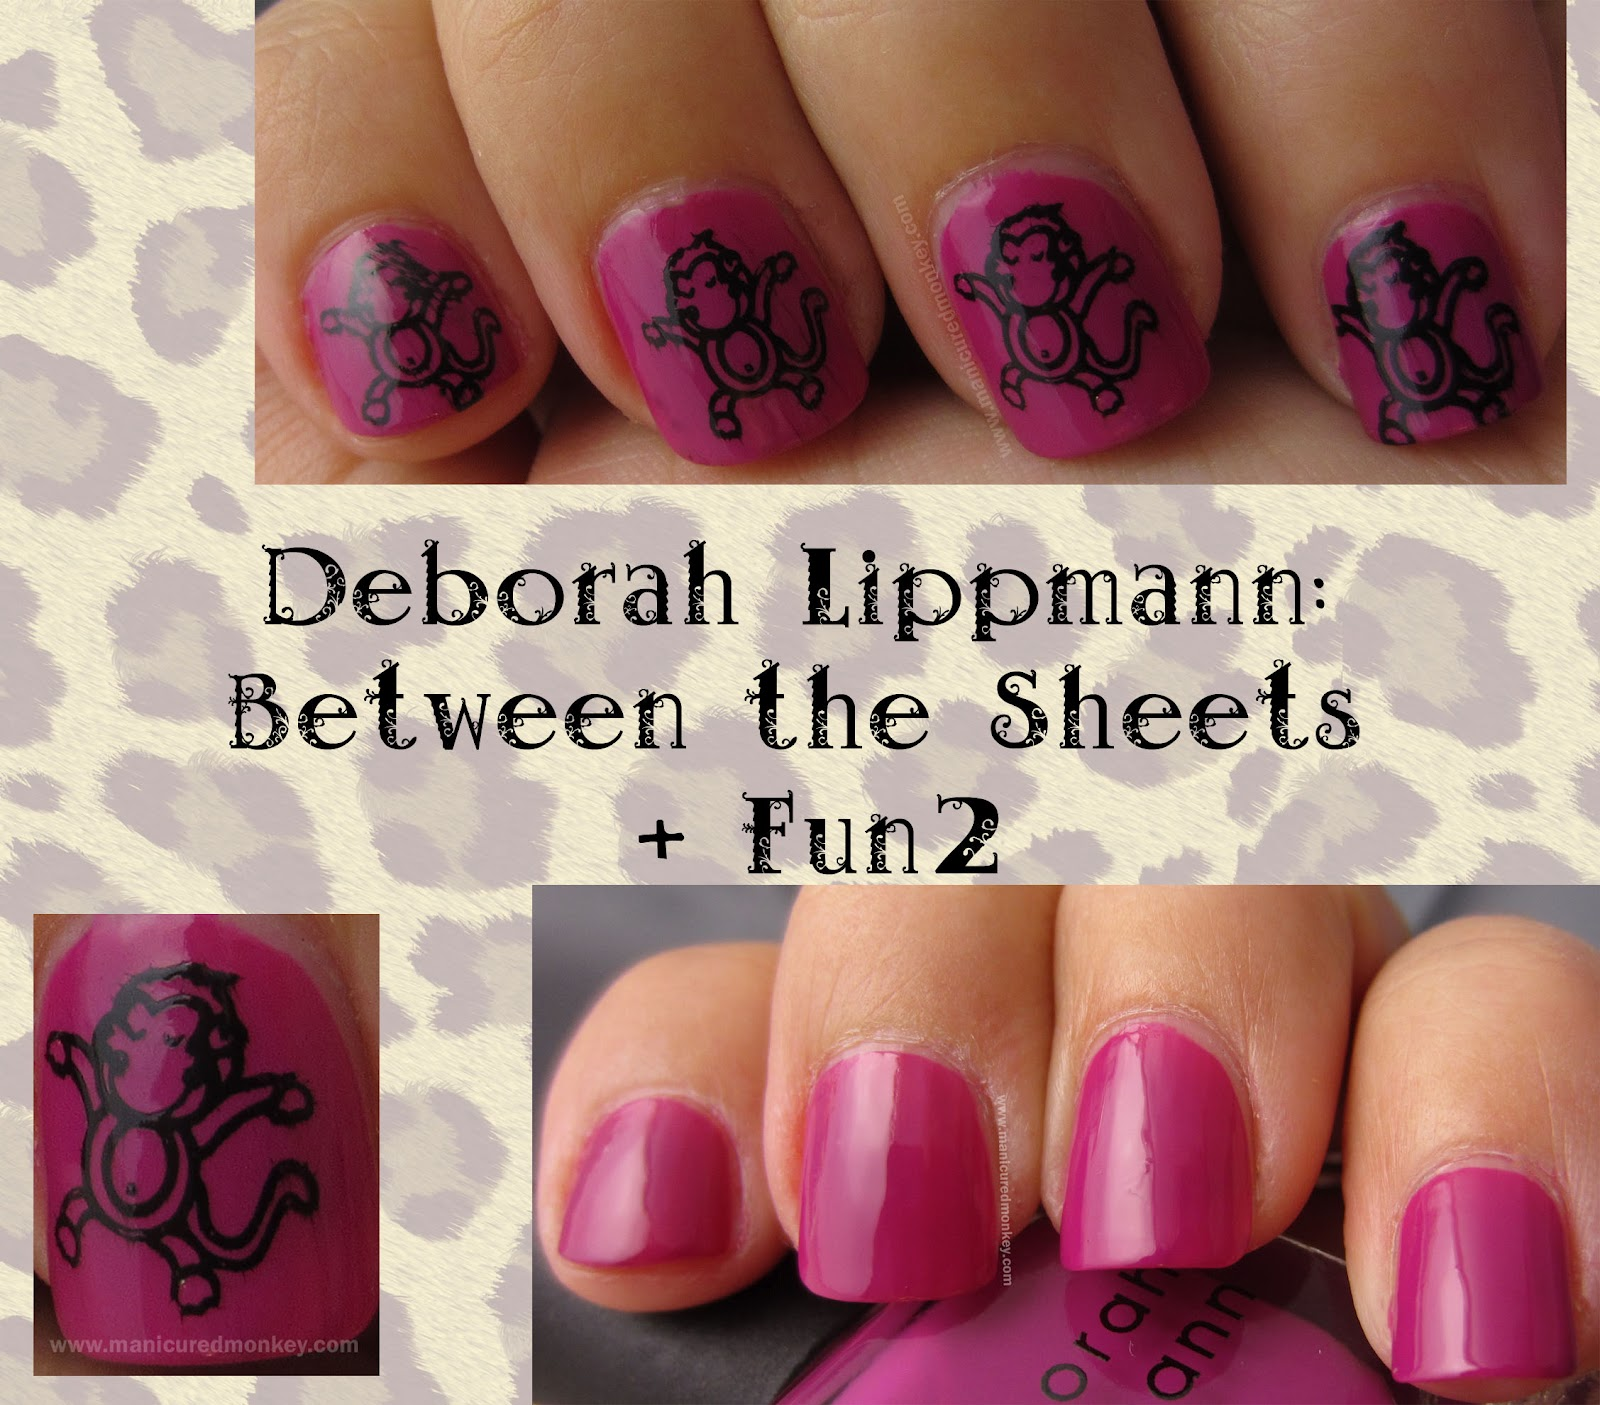 The Manicured Monkey: Deborah Lippmann: Between the Sheets ...